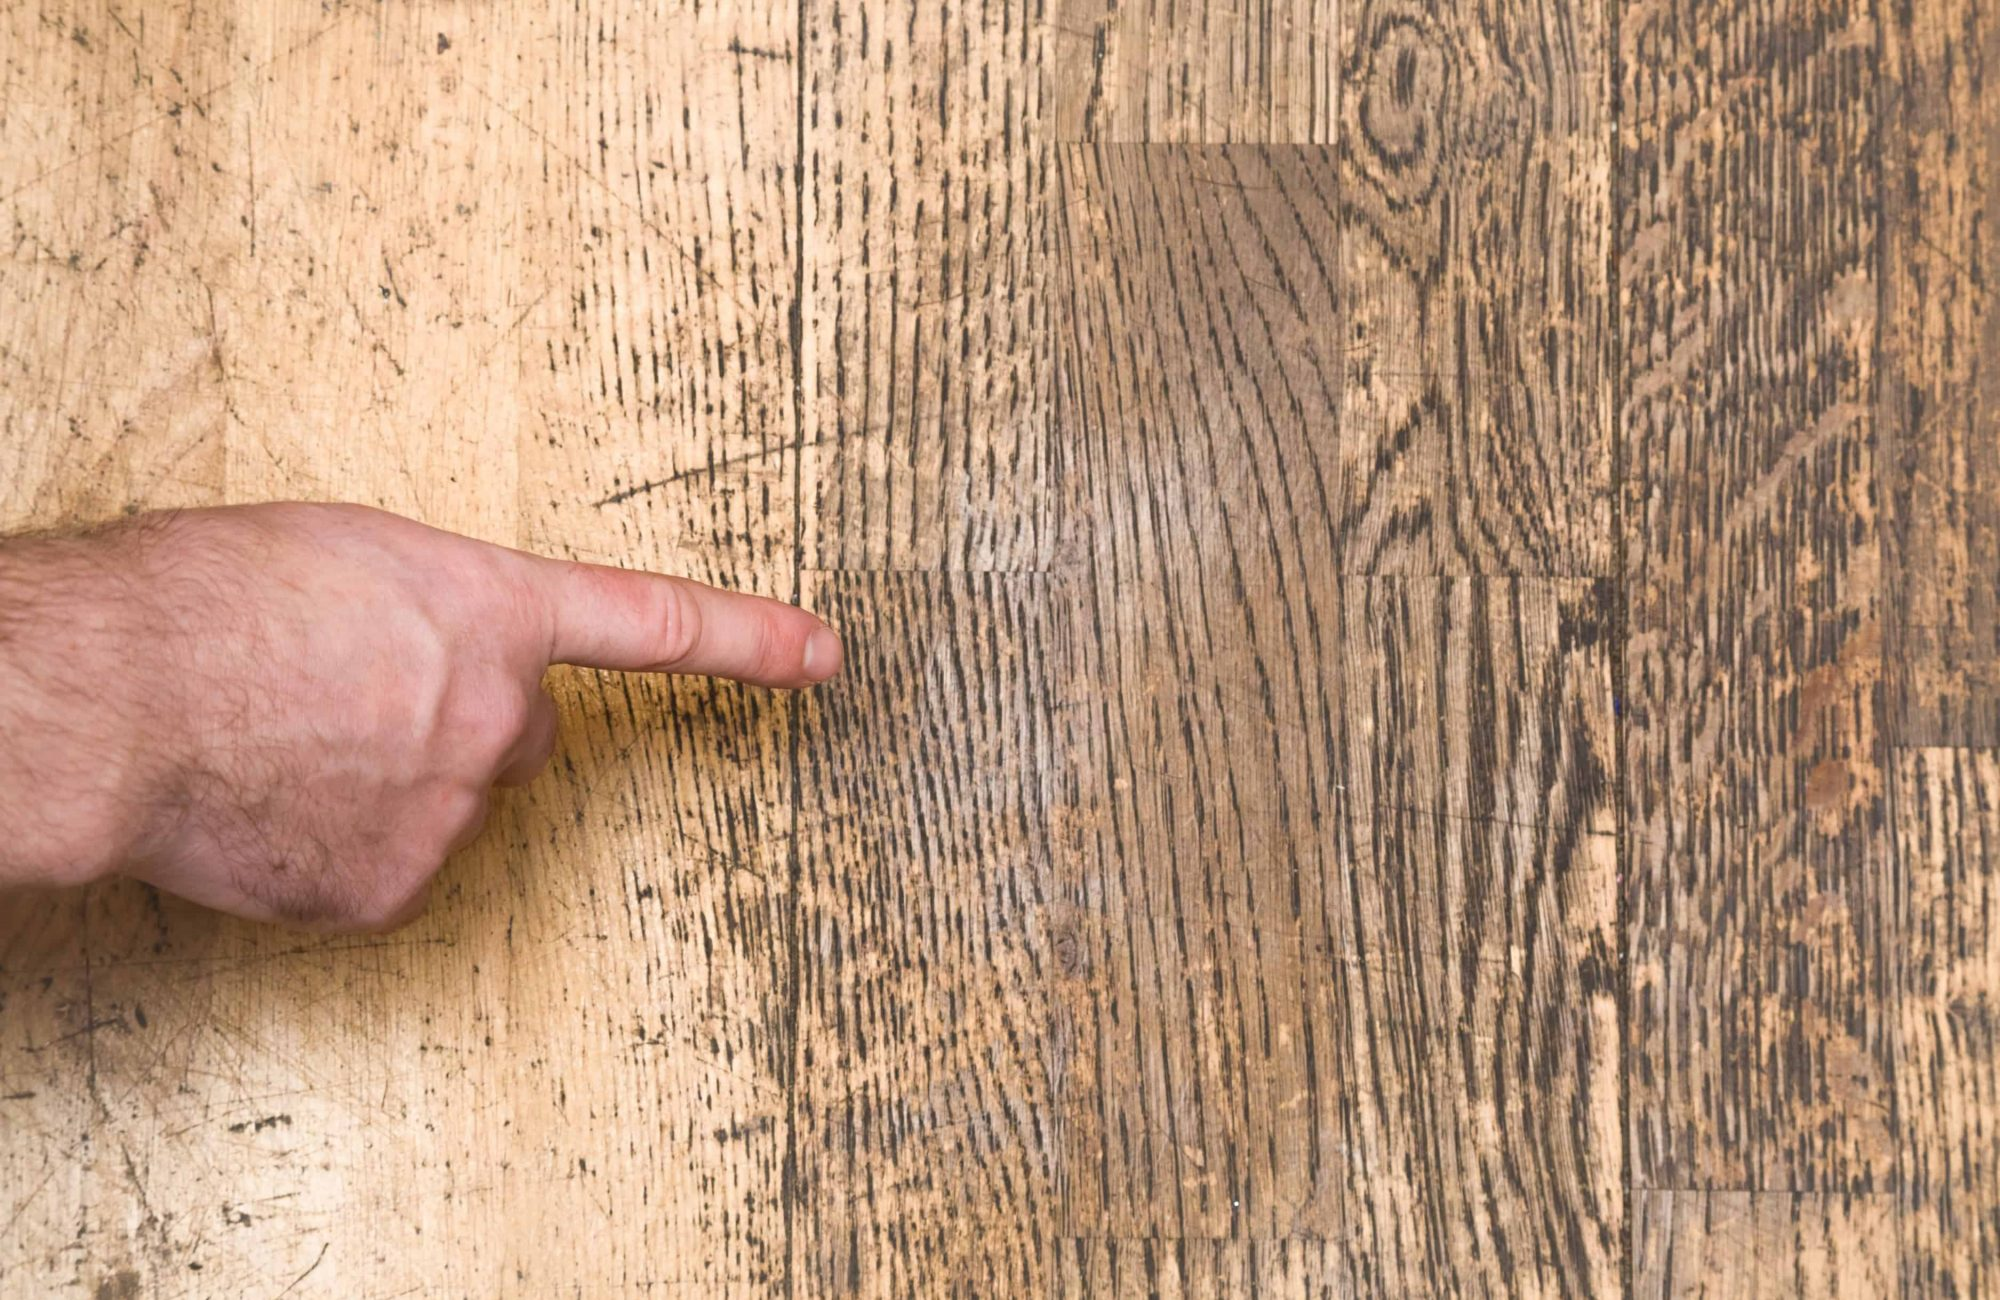 Hardwood Flooring Dents And Scratches Causes And Fixes